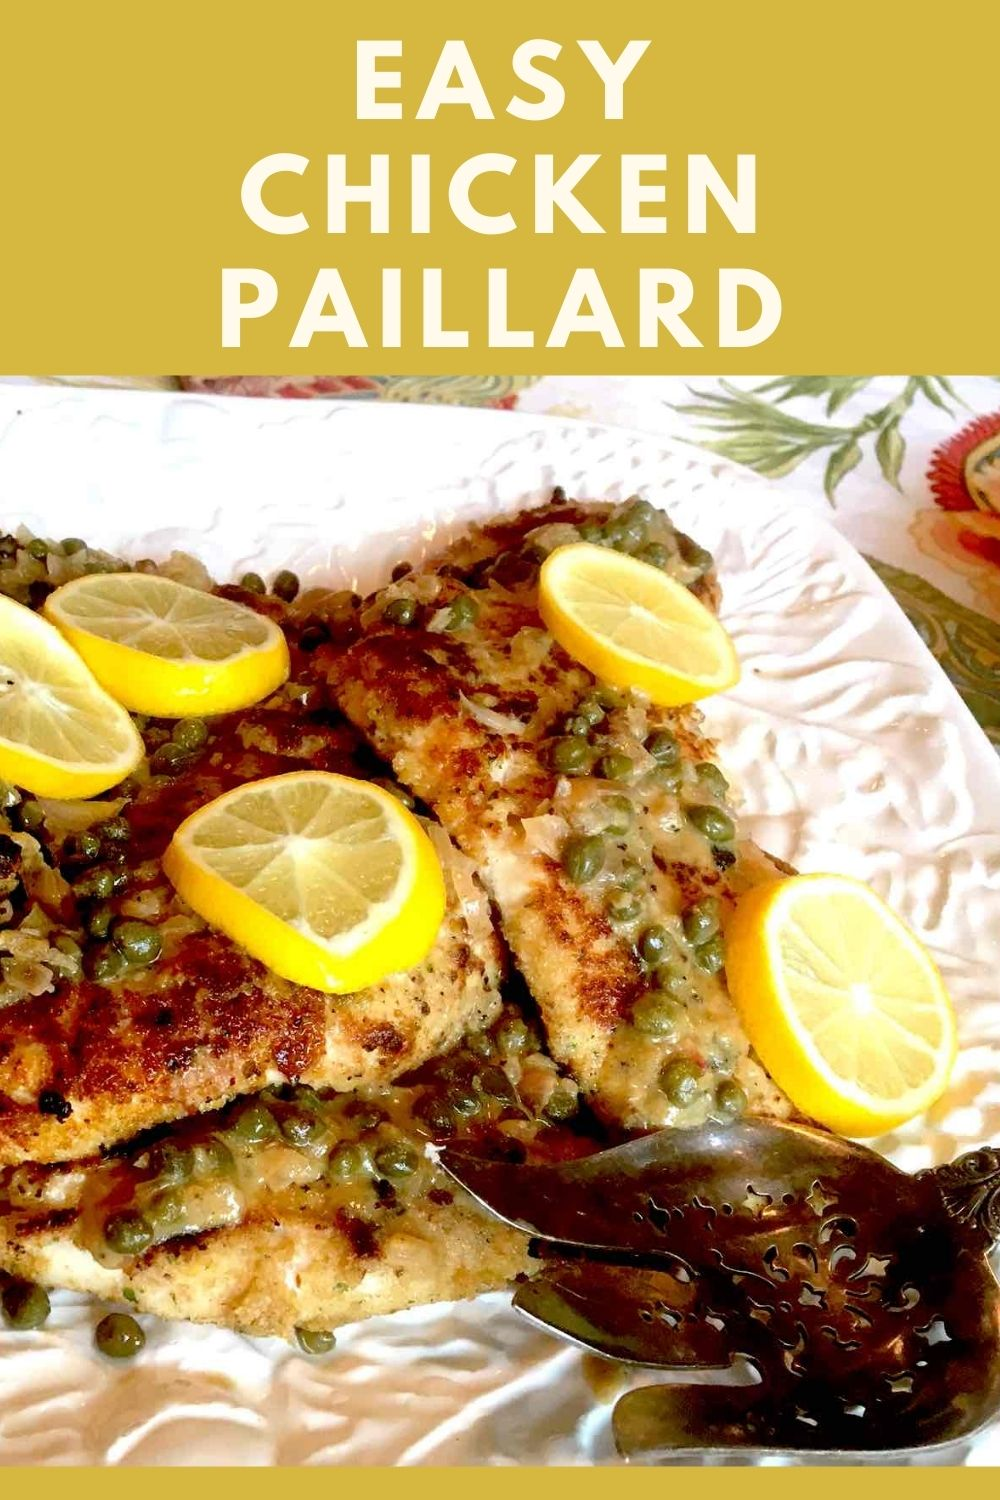 Easy Chicken Paillard recipe graphic